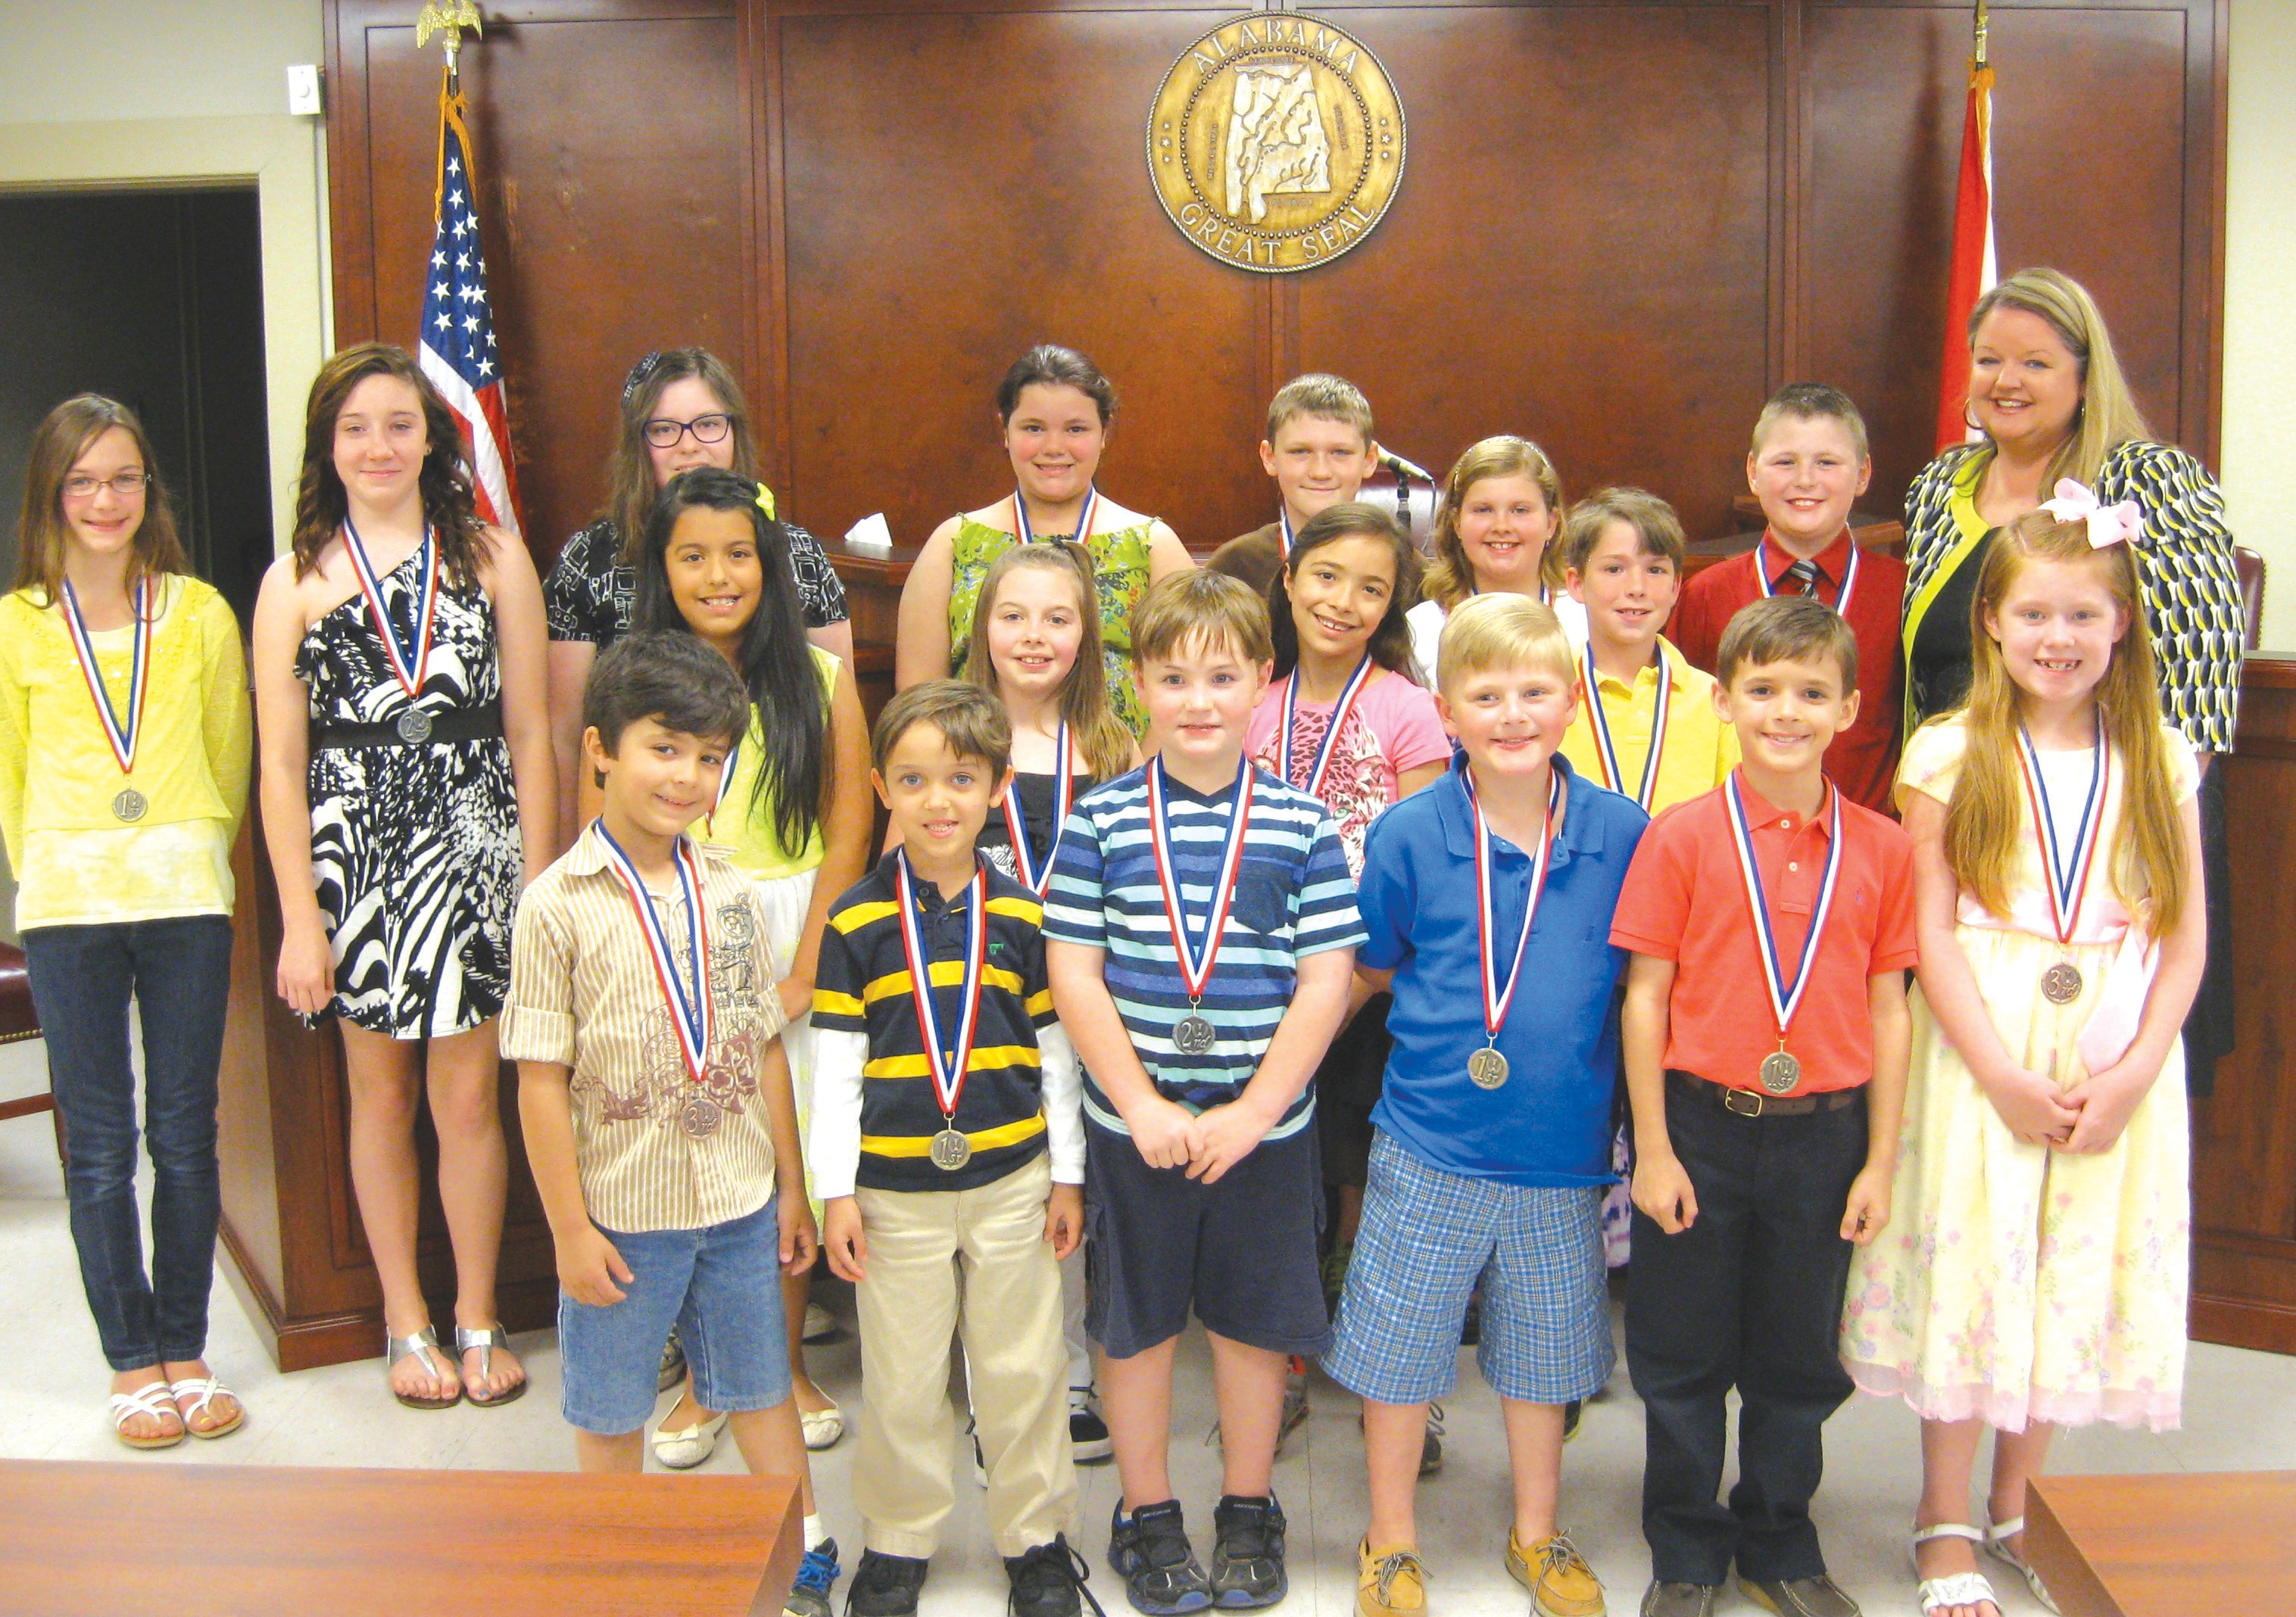 Each school in Blount County had a winner in connection with the Blount County Children's Center 'Be a Hero – Stop Child Abuse' poster contest, and these students were recognized for their achievement last month. In total, 224 posters were submitted for the contest. – Nicole Singleton